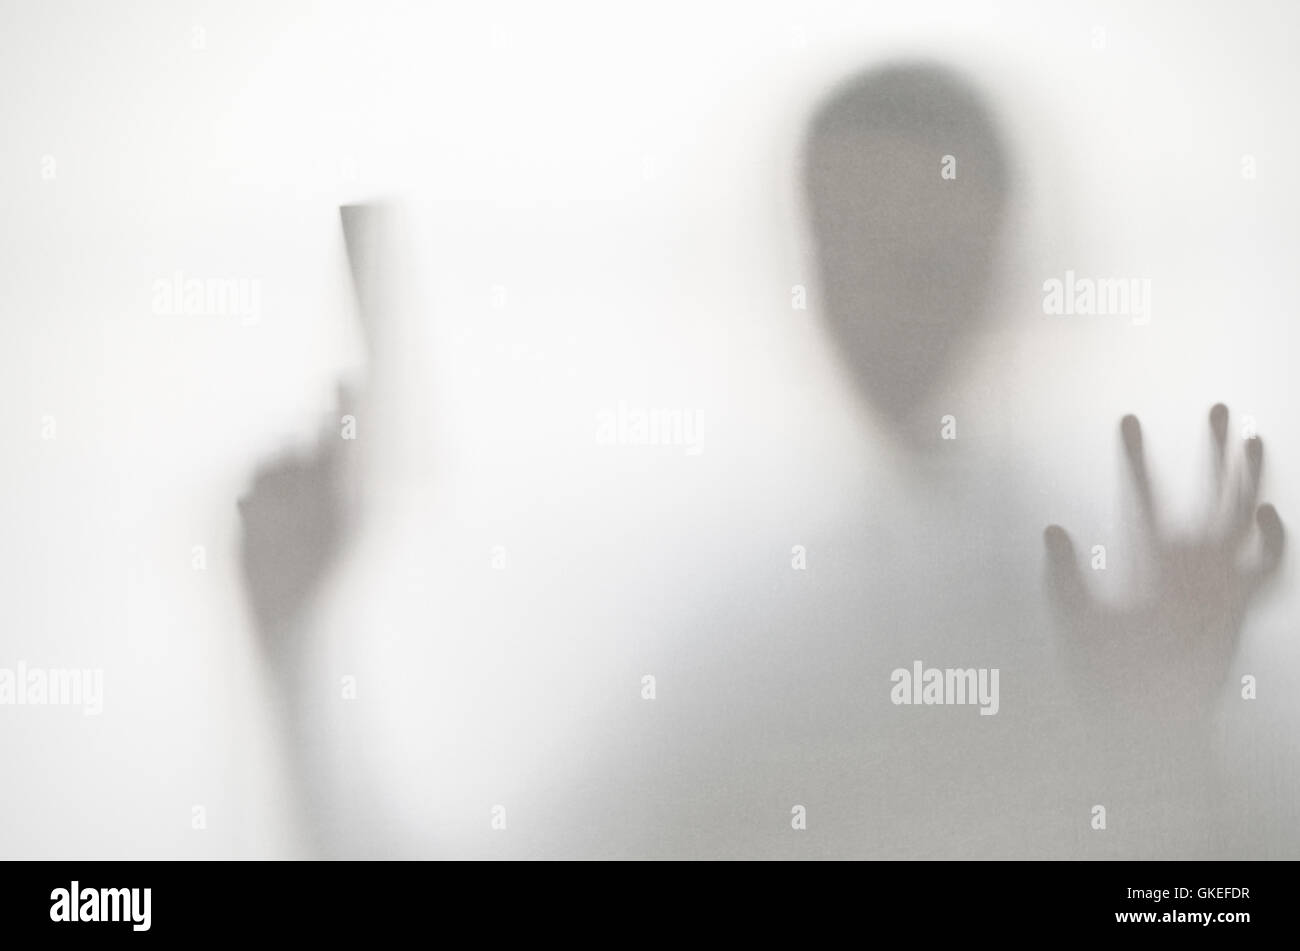 Spooky man behind curtain. Hands and blurry human figure abstraction. Stock Photo